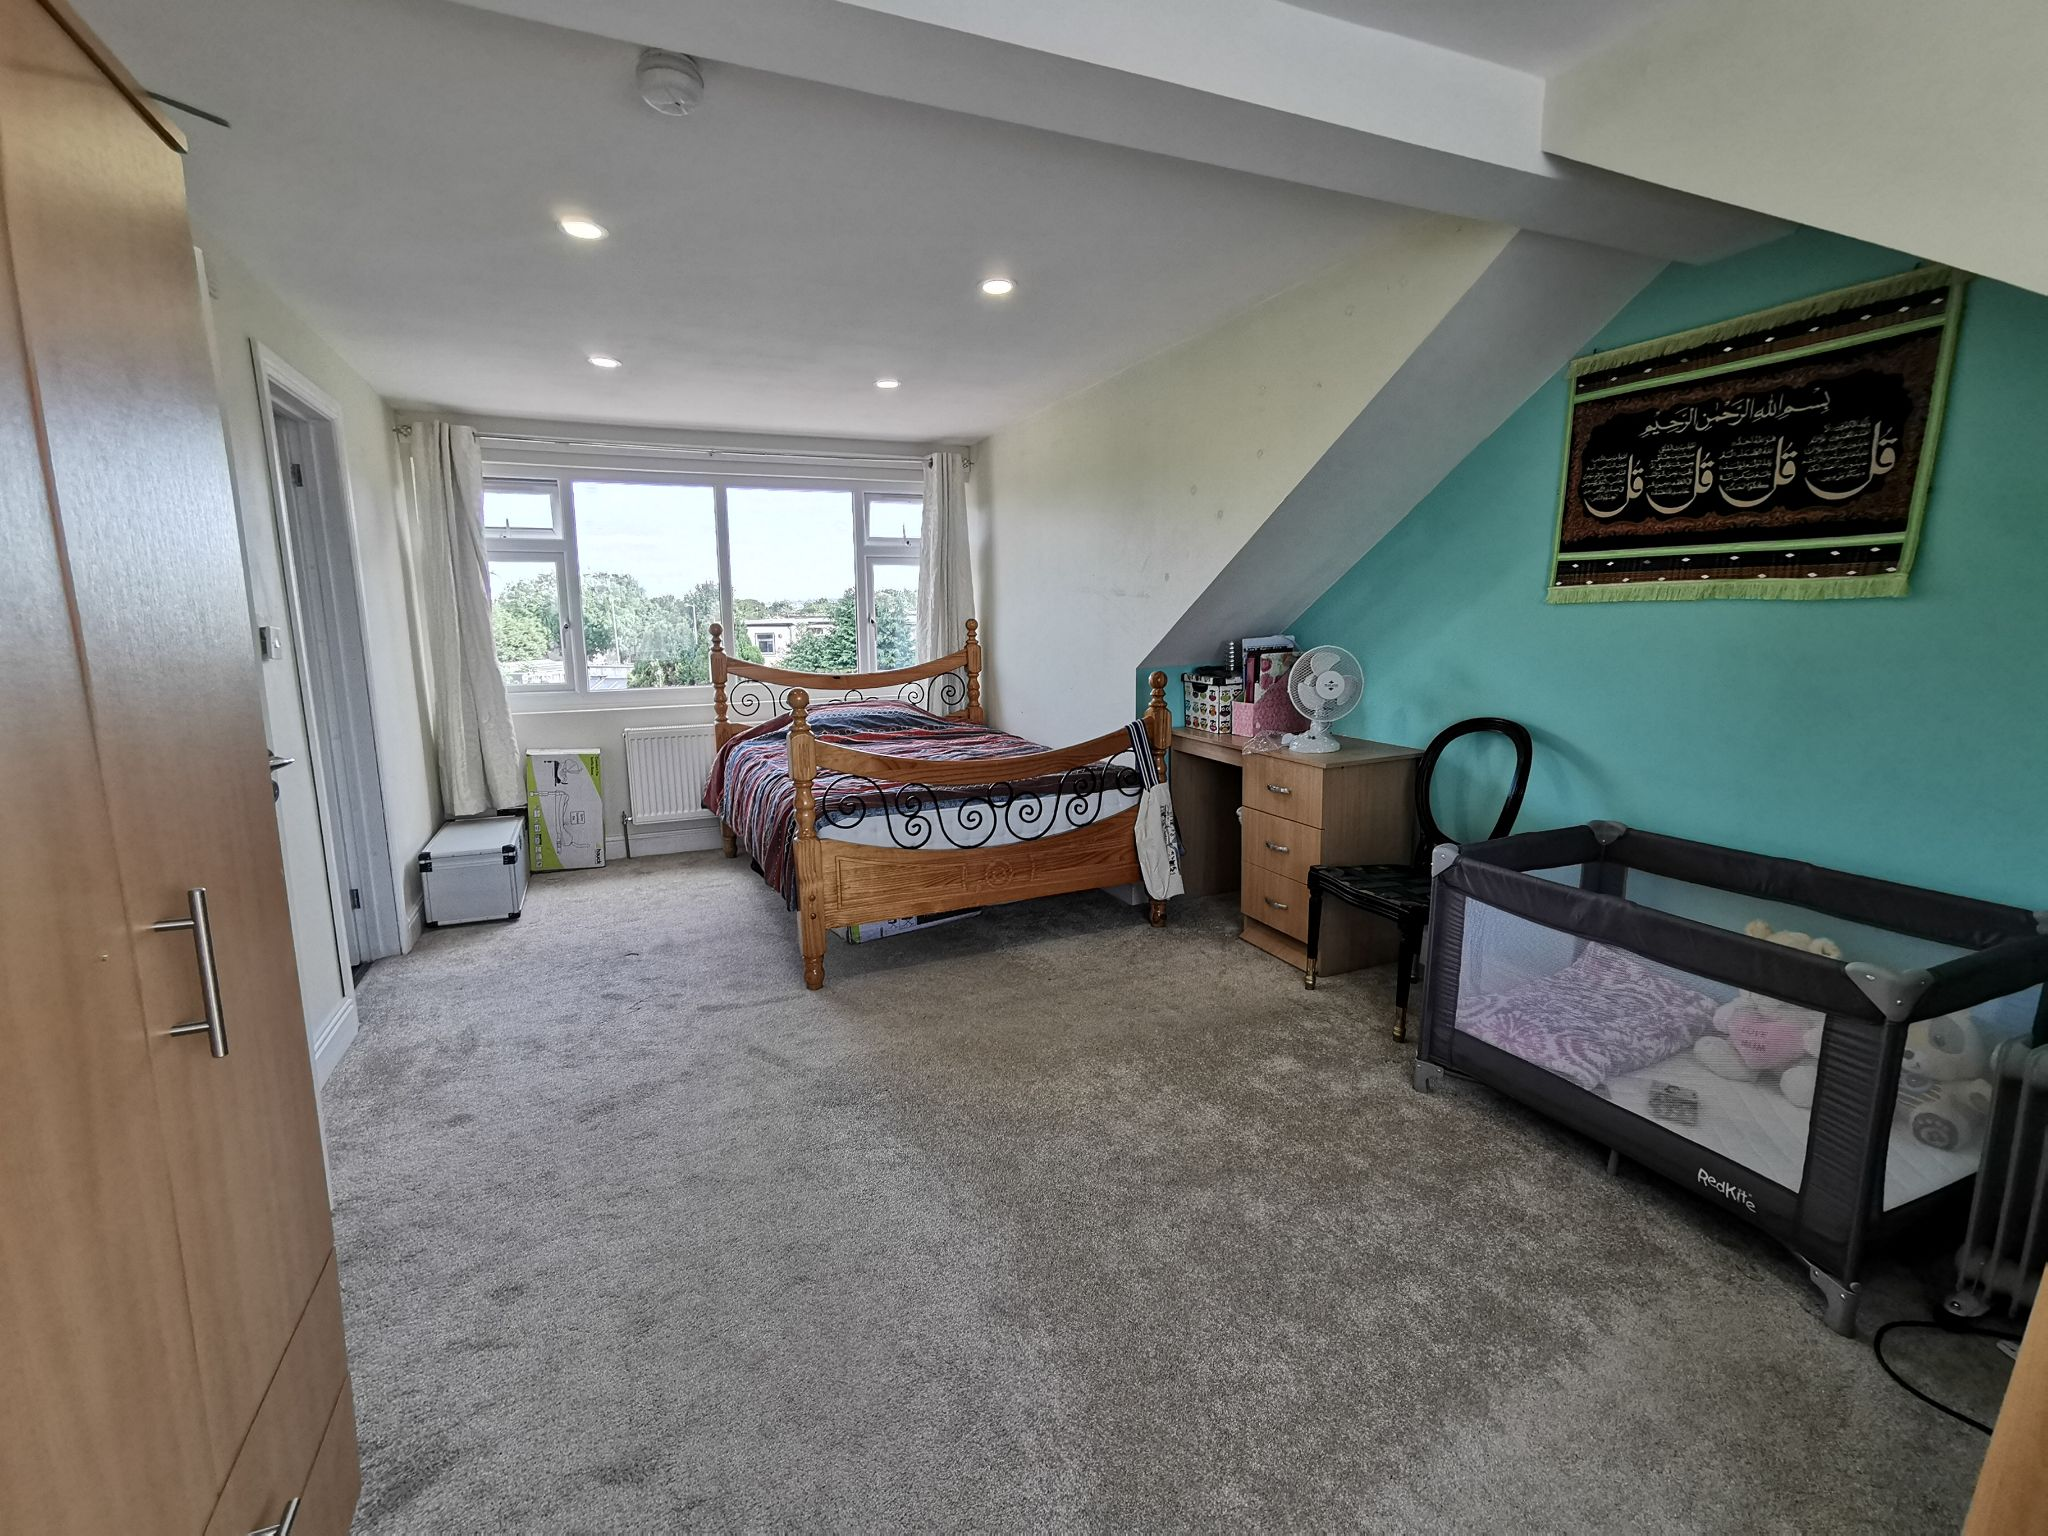 4 bedroom semi-detached house SSTC in Bradford - Photograph 16.